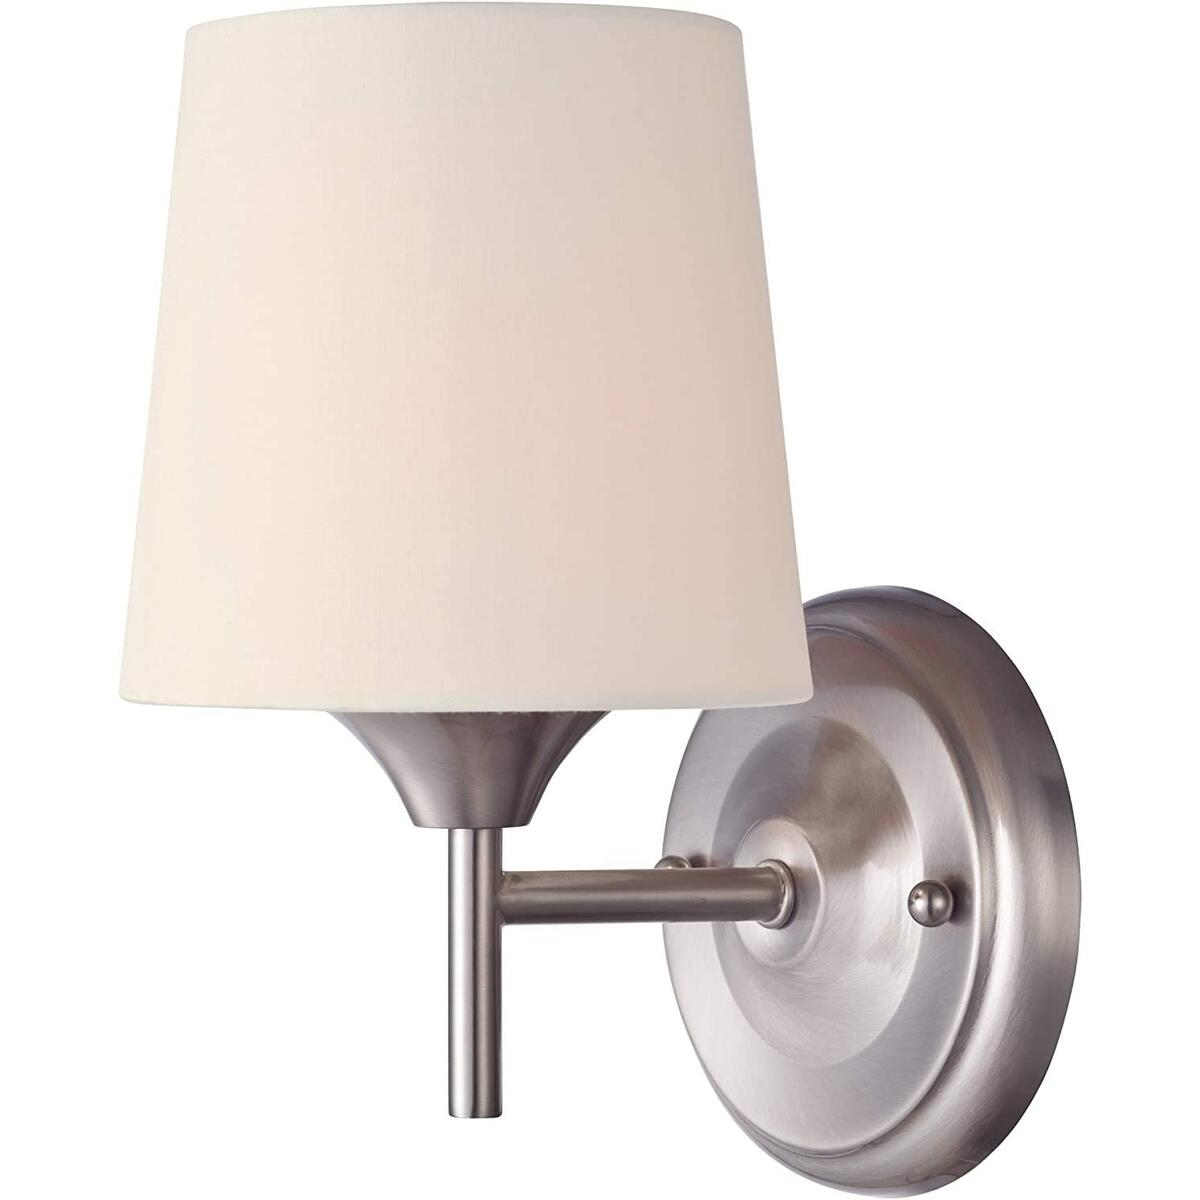 1 Light Wall Fixture in Brushed Nickel Finish with White Linen Fabric Shade (1 Light Wall Fixture)